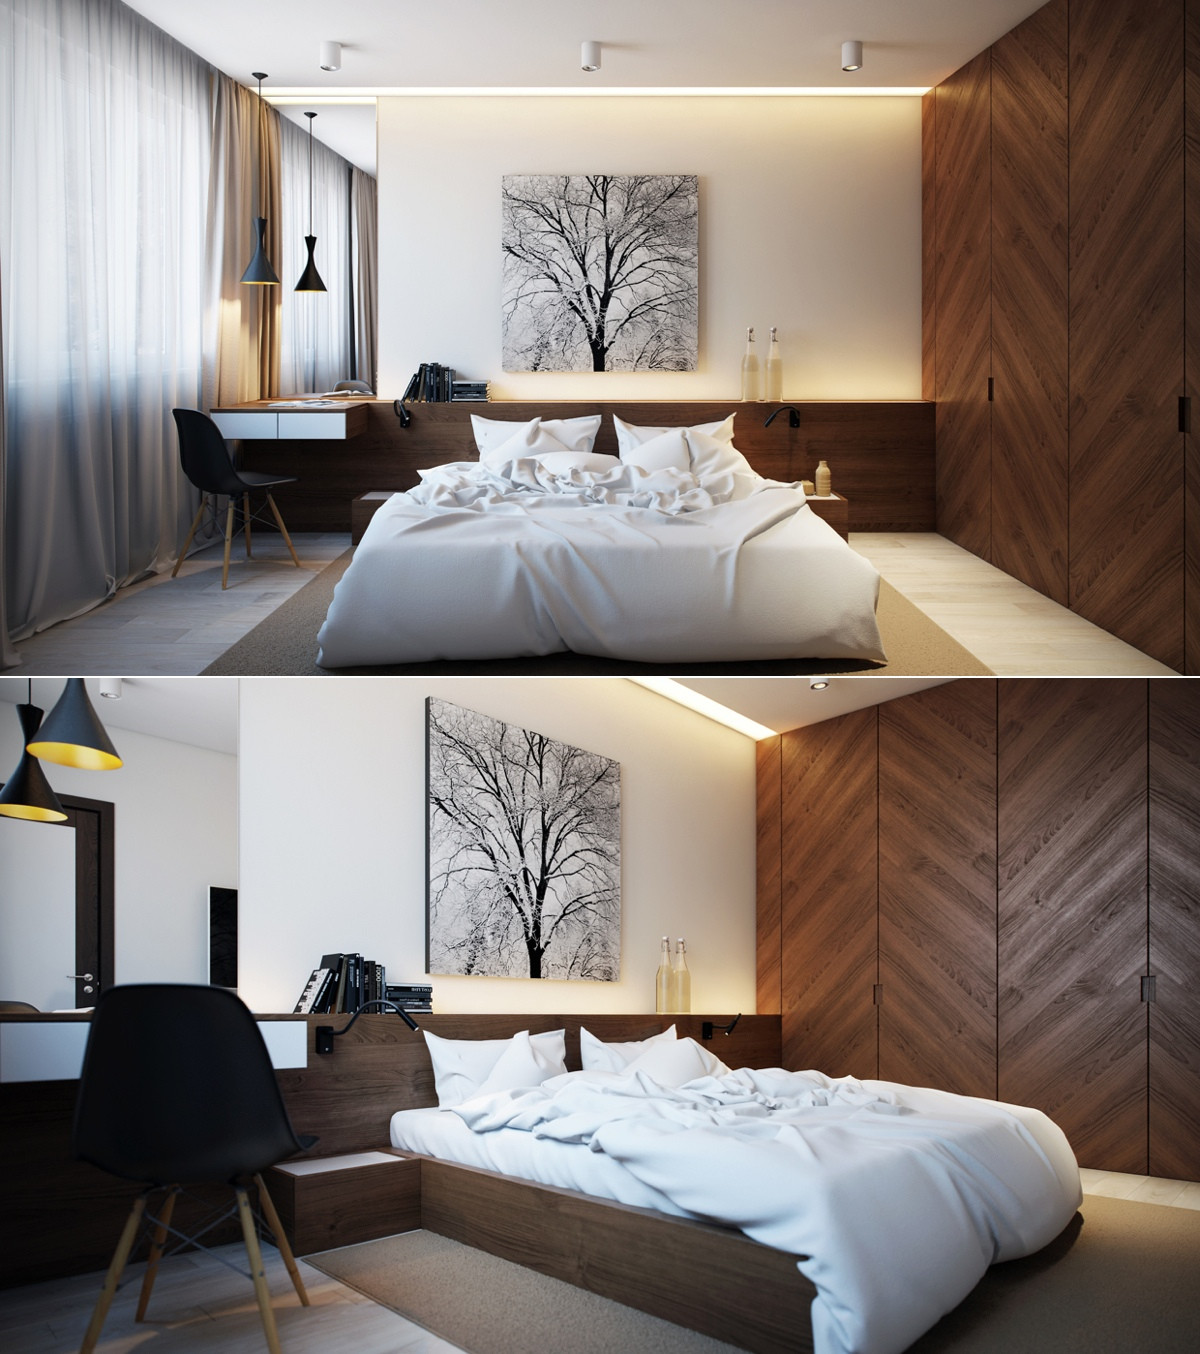 Best ideas about Contemporary Bedroom Ideas . Save or Pin Modern Bedroom Design Ideas for Rooms of Any Size Now.